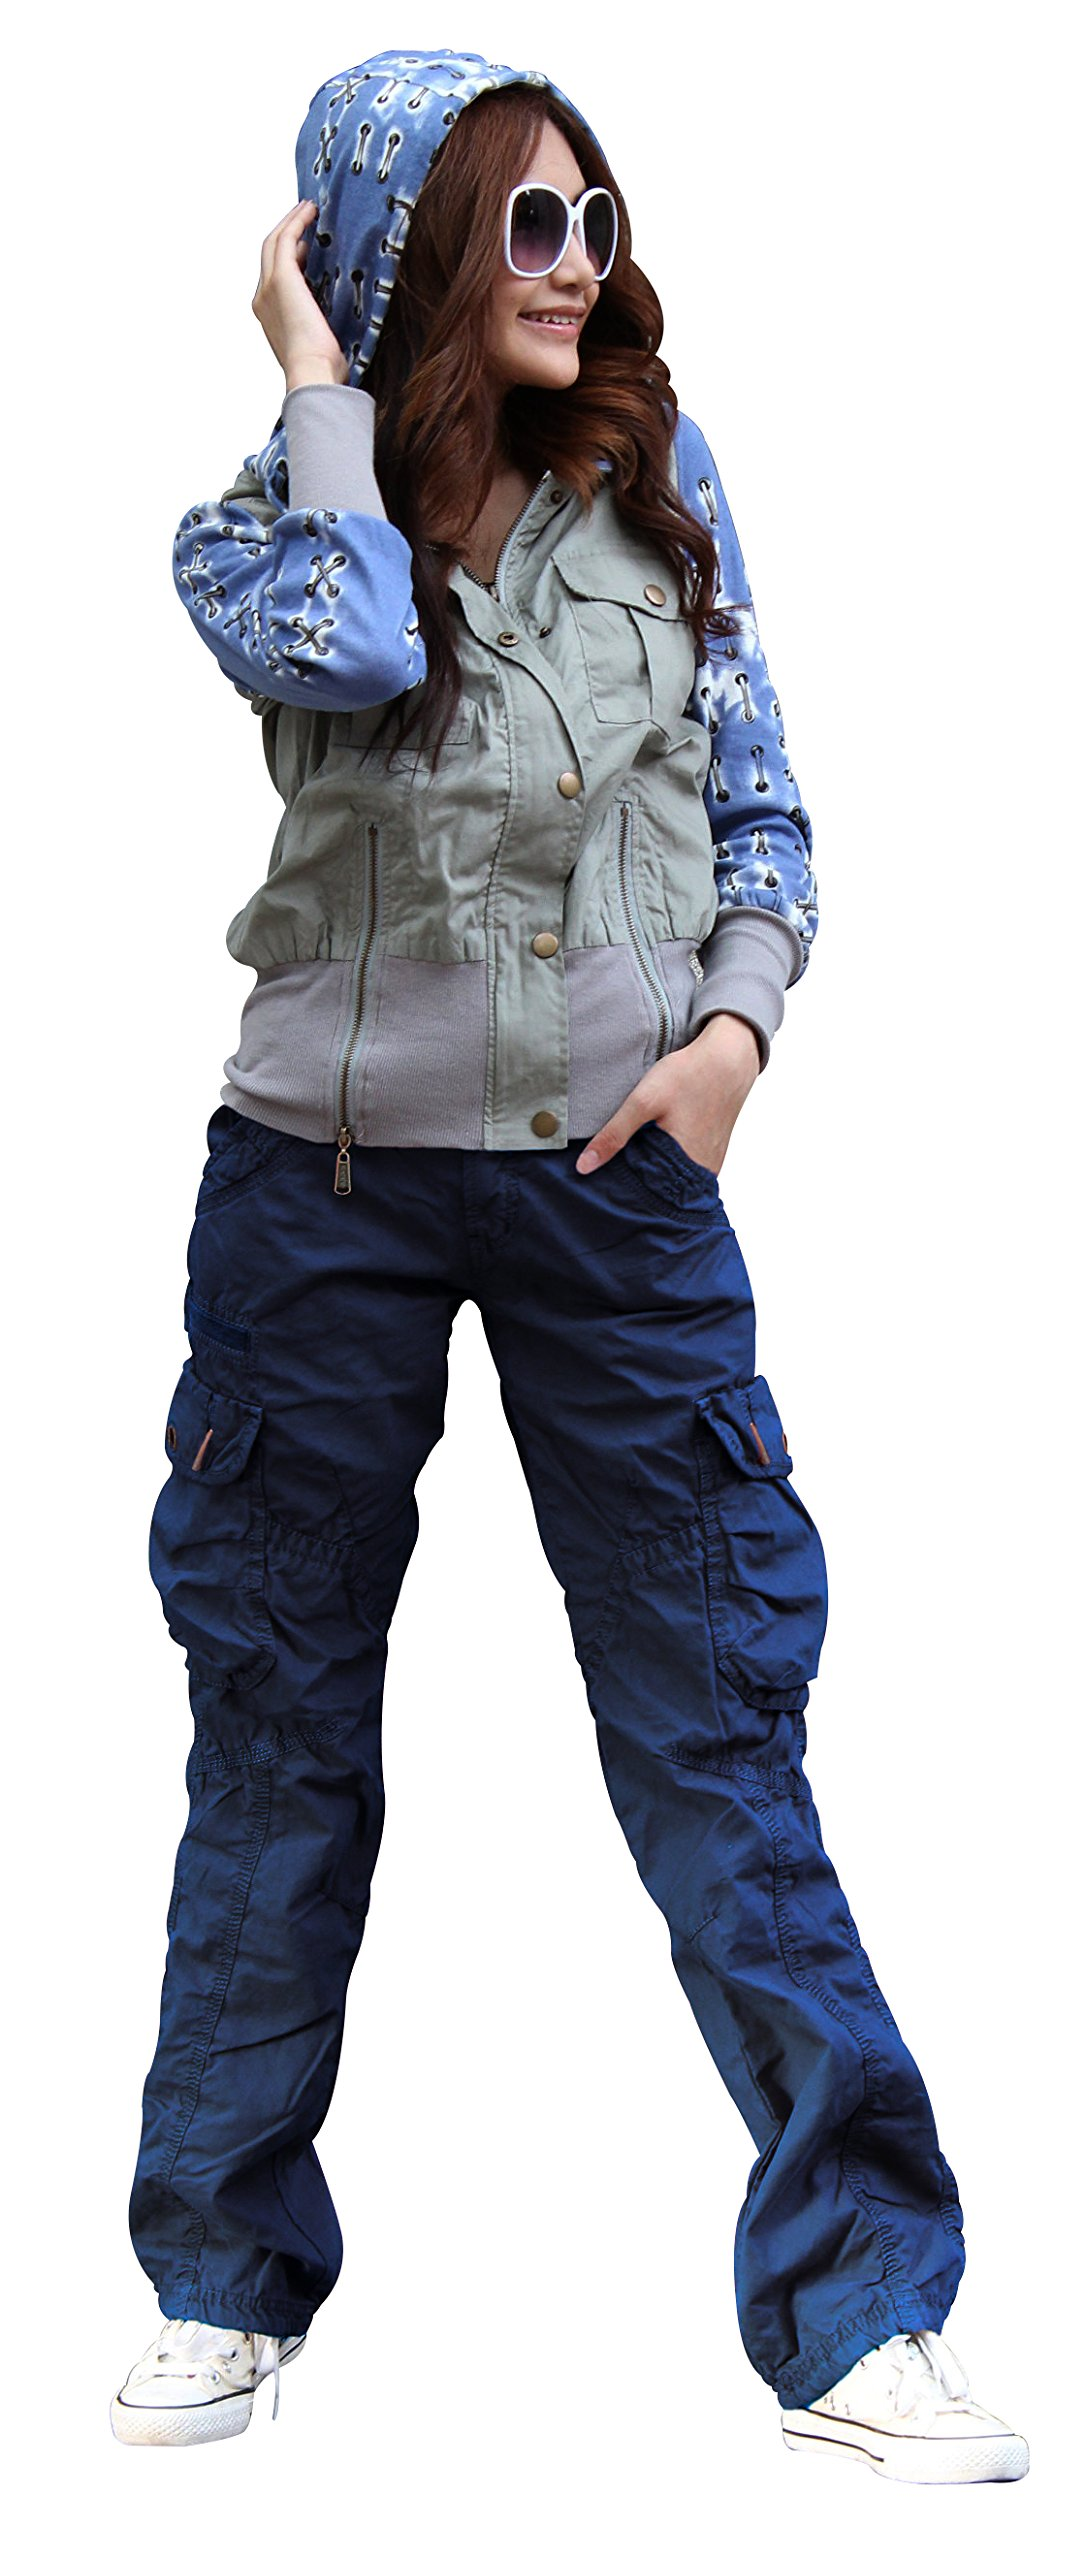 SKYLINEWEARS Women's Casual Cargo Pants Military Army Styles Cotton Trousers 2809 Navy XL